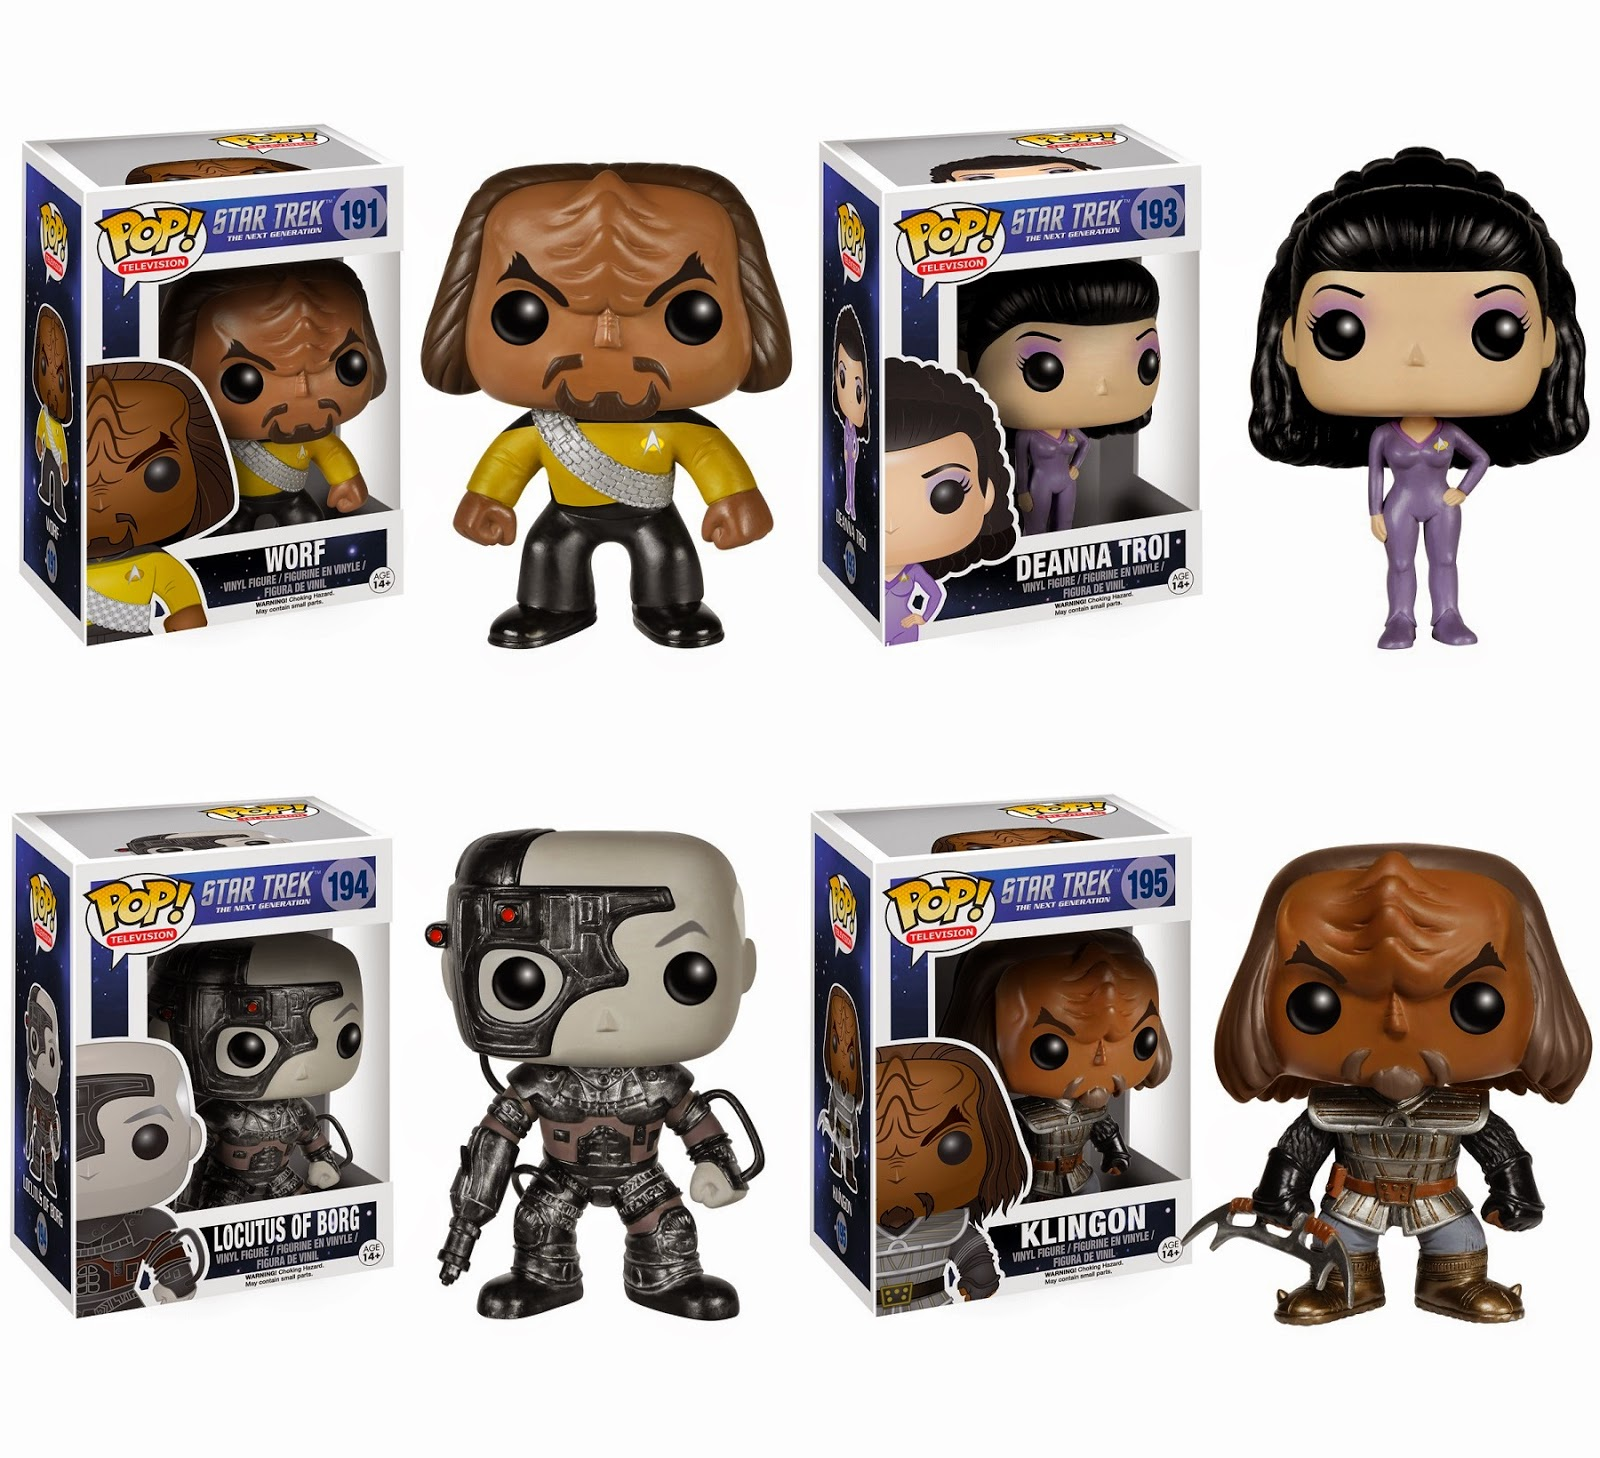 Star Trek: The Next Generation Pop! Television Vinyl Figures by Funko - Worf, Deanna Troi, Picard as Locutus of the Borg & a Klingon